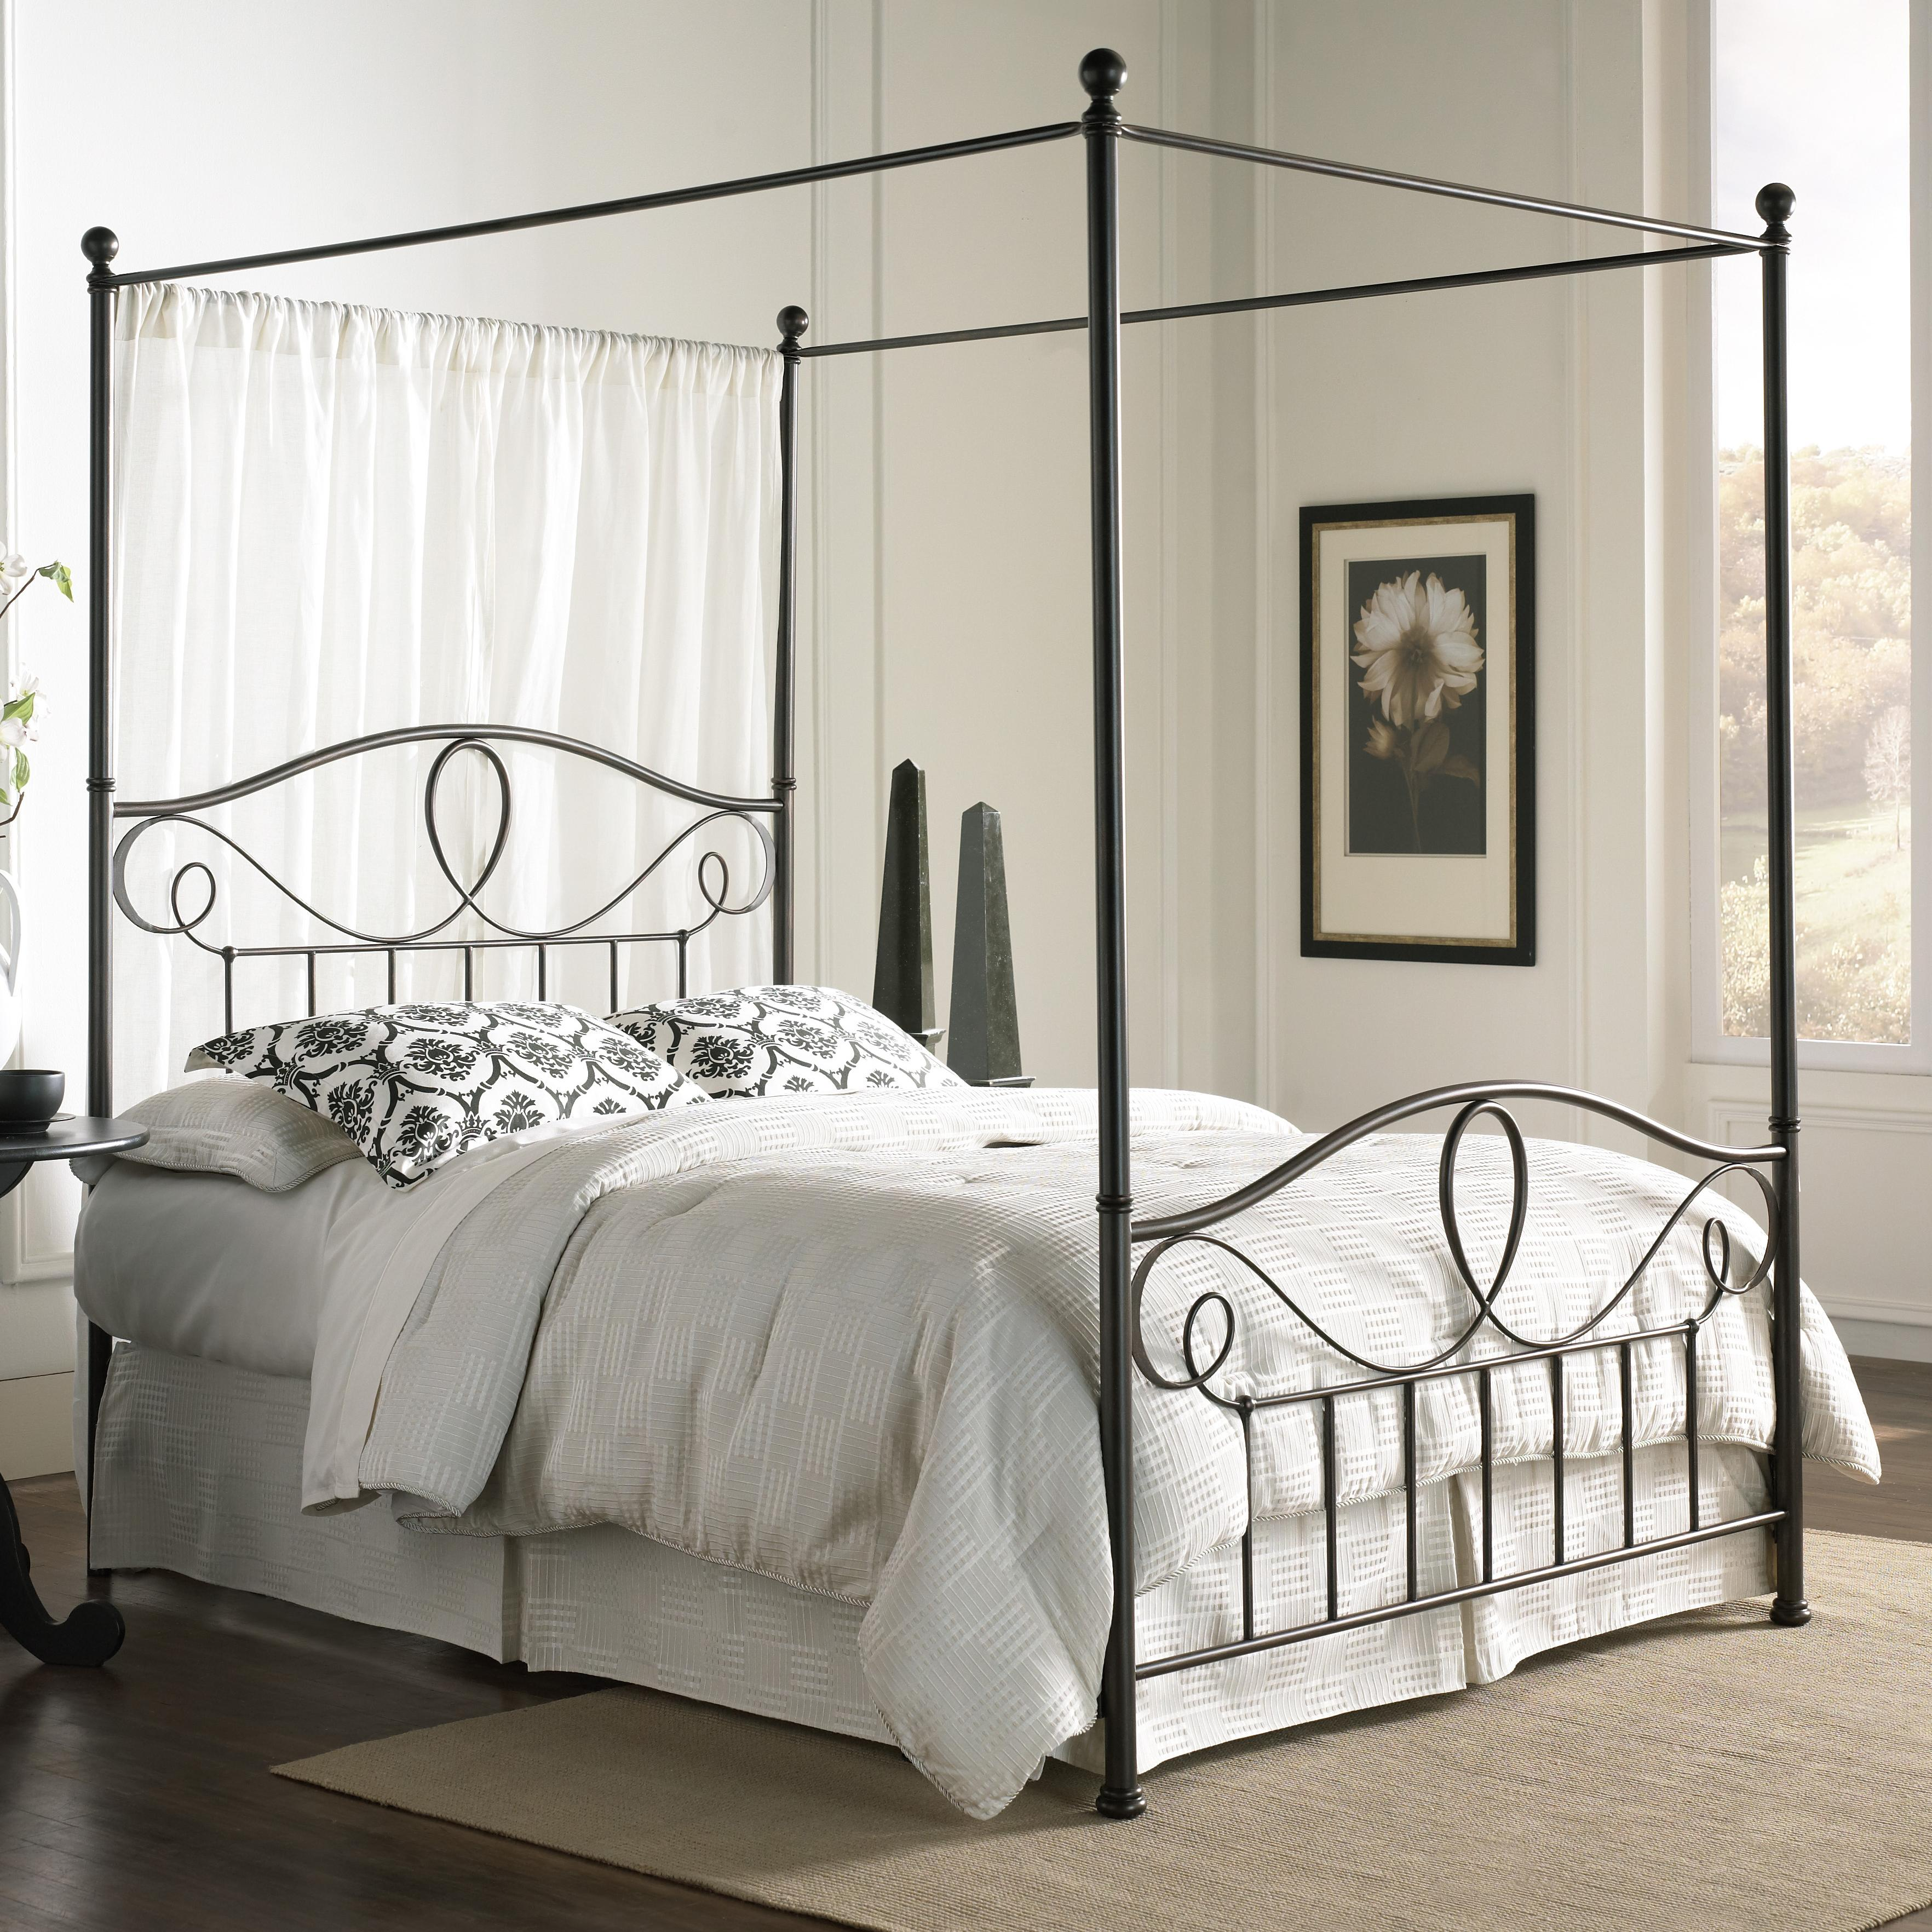 Fashion Bed Group Canopy Beds Full Sylvania Canopy Bed